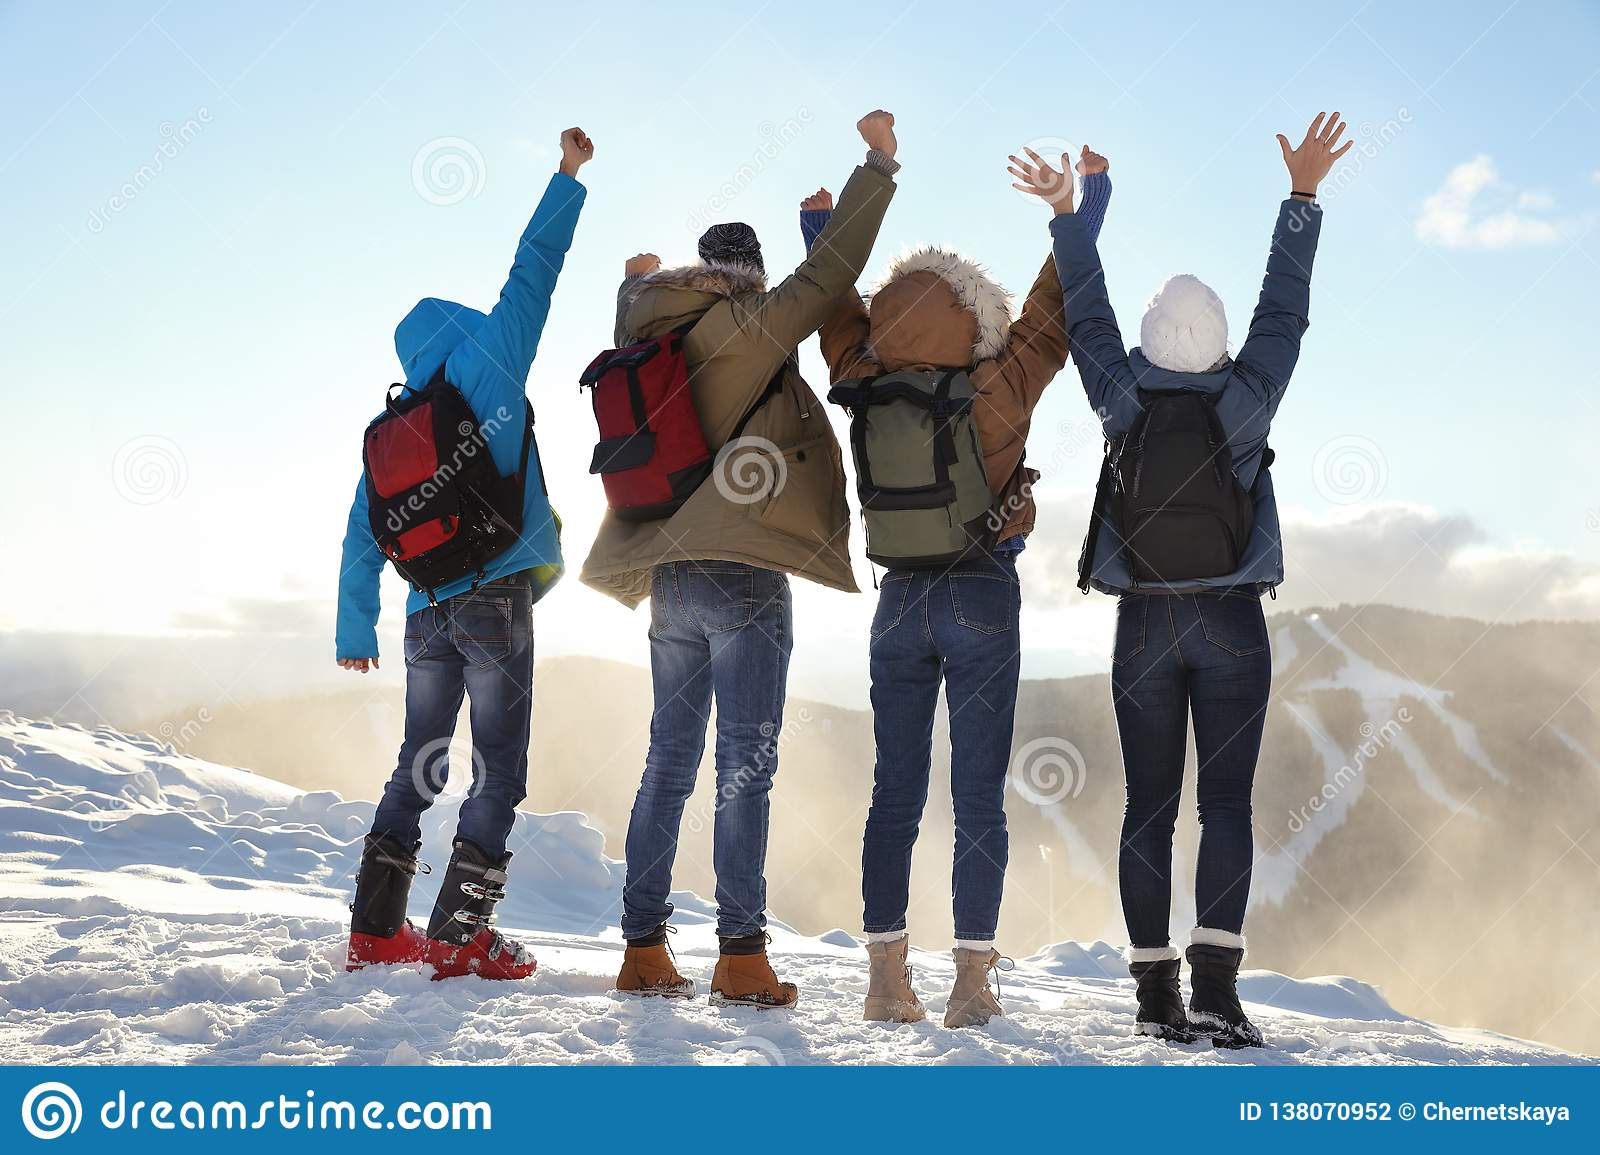 Group of excited friends with backpacks enjoying view during winter vacation